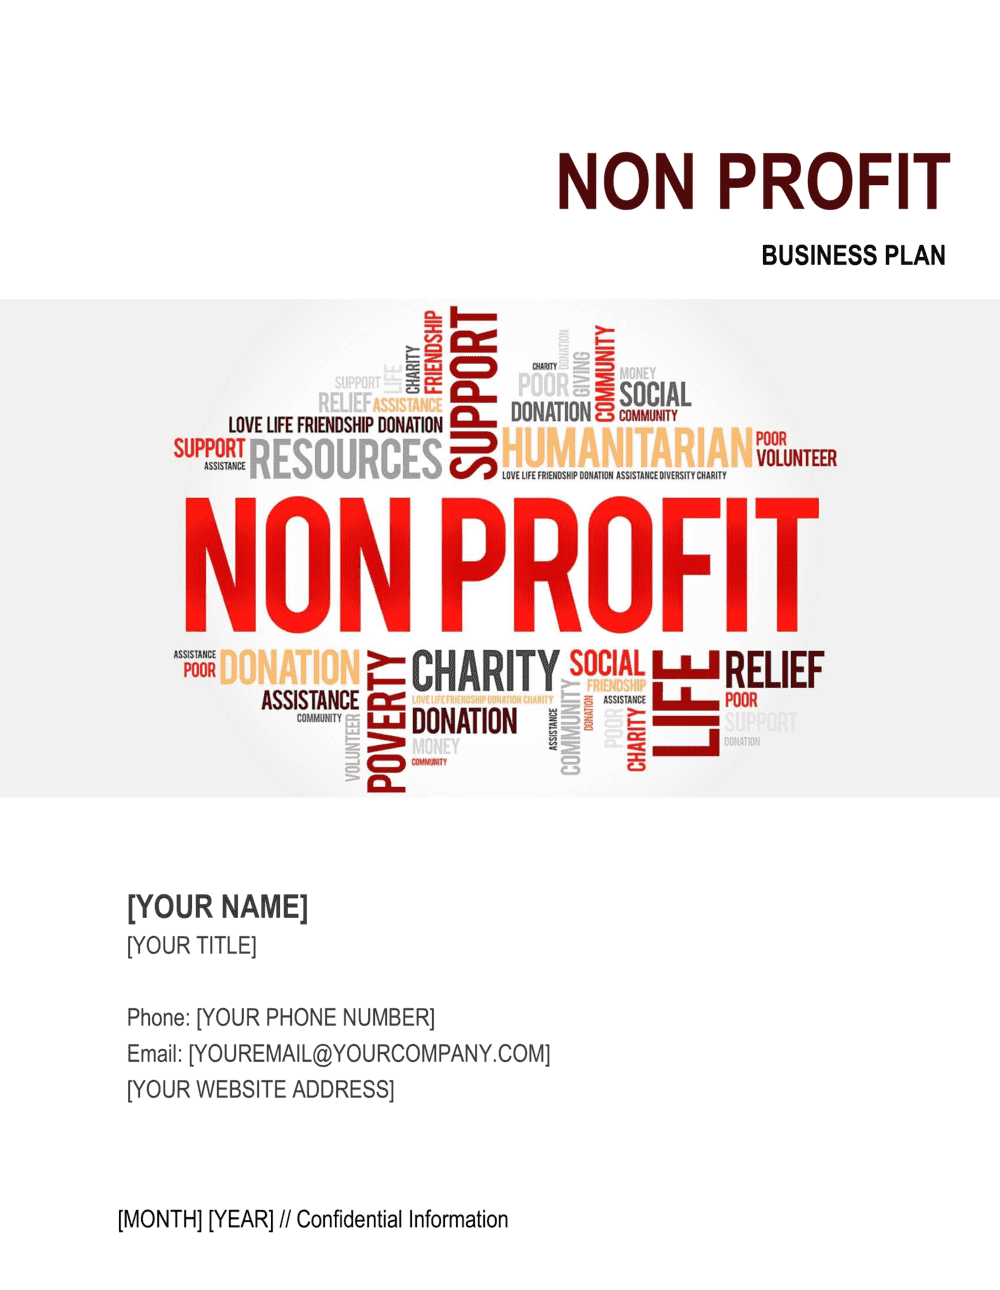 Business-in-a-Box's Non-profit Organization Business Plan 4 Template